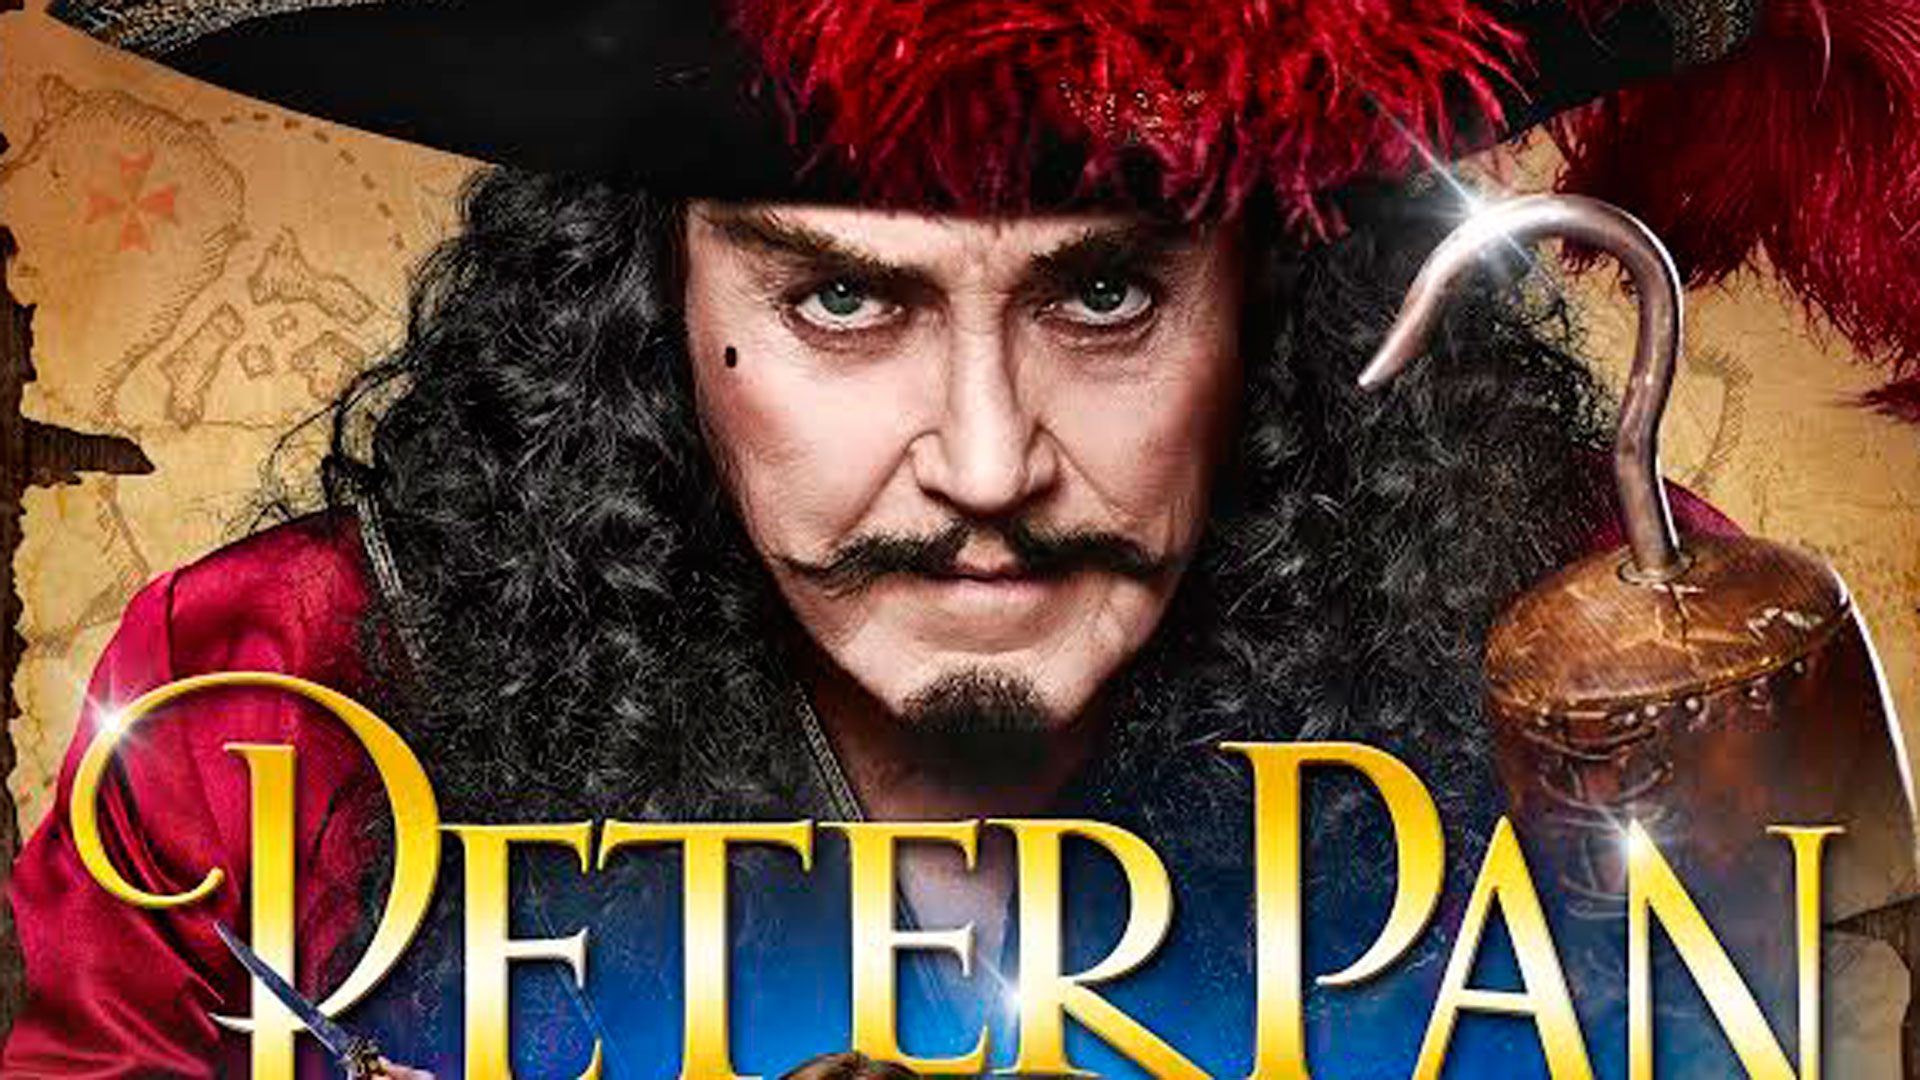 Peter Pan Live Wallpapers